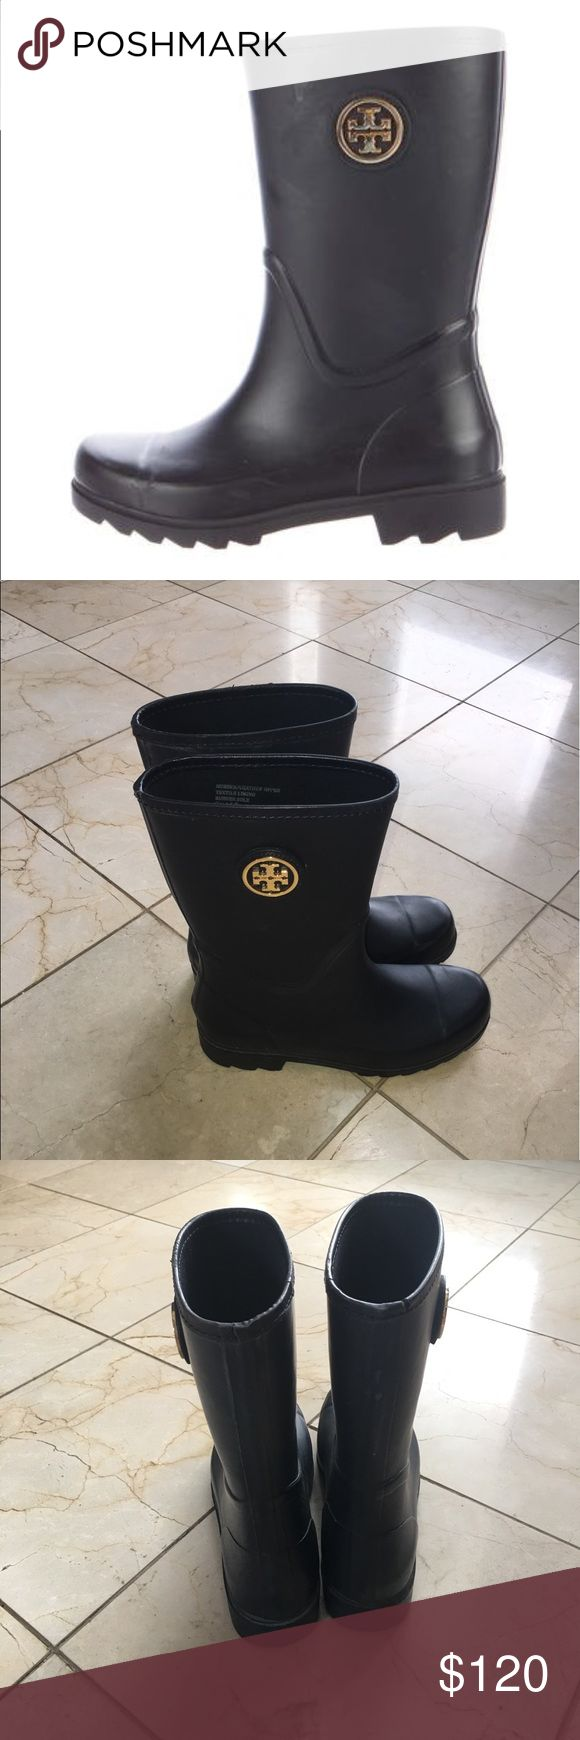 TORY BURCH - Navy Mid Calf Rain Boots LOVE these rain boots!! Very comfy and stylish rain boots. Comes in original box. Looks great when styled with socks or without. Gently worn with tiny scuff marks on toe and heel as pictured. It's hard to let these go but I just got a new pair and no longer need these. Tory Burch Shoes Winter & Rain Boots